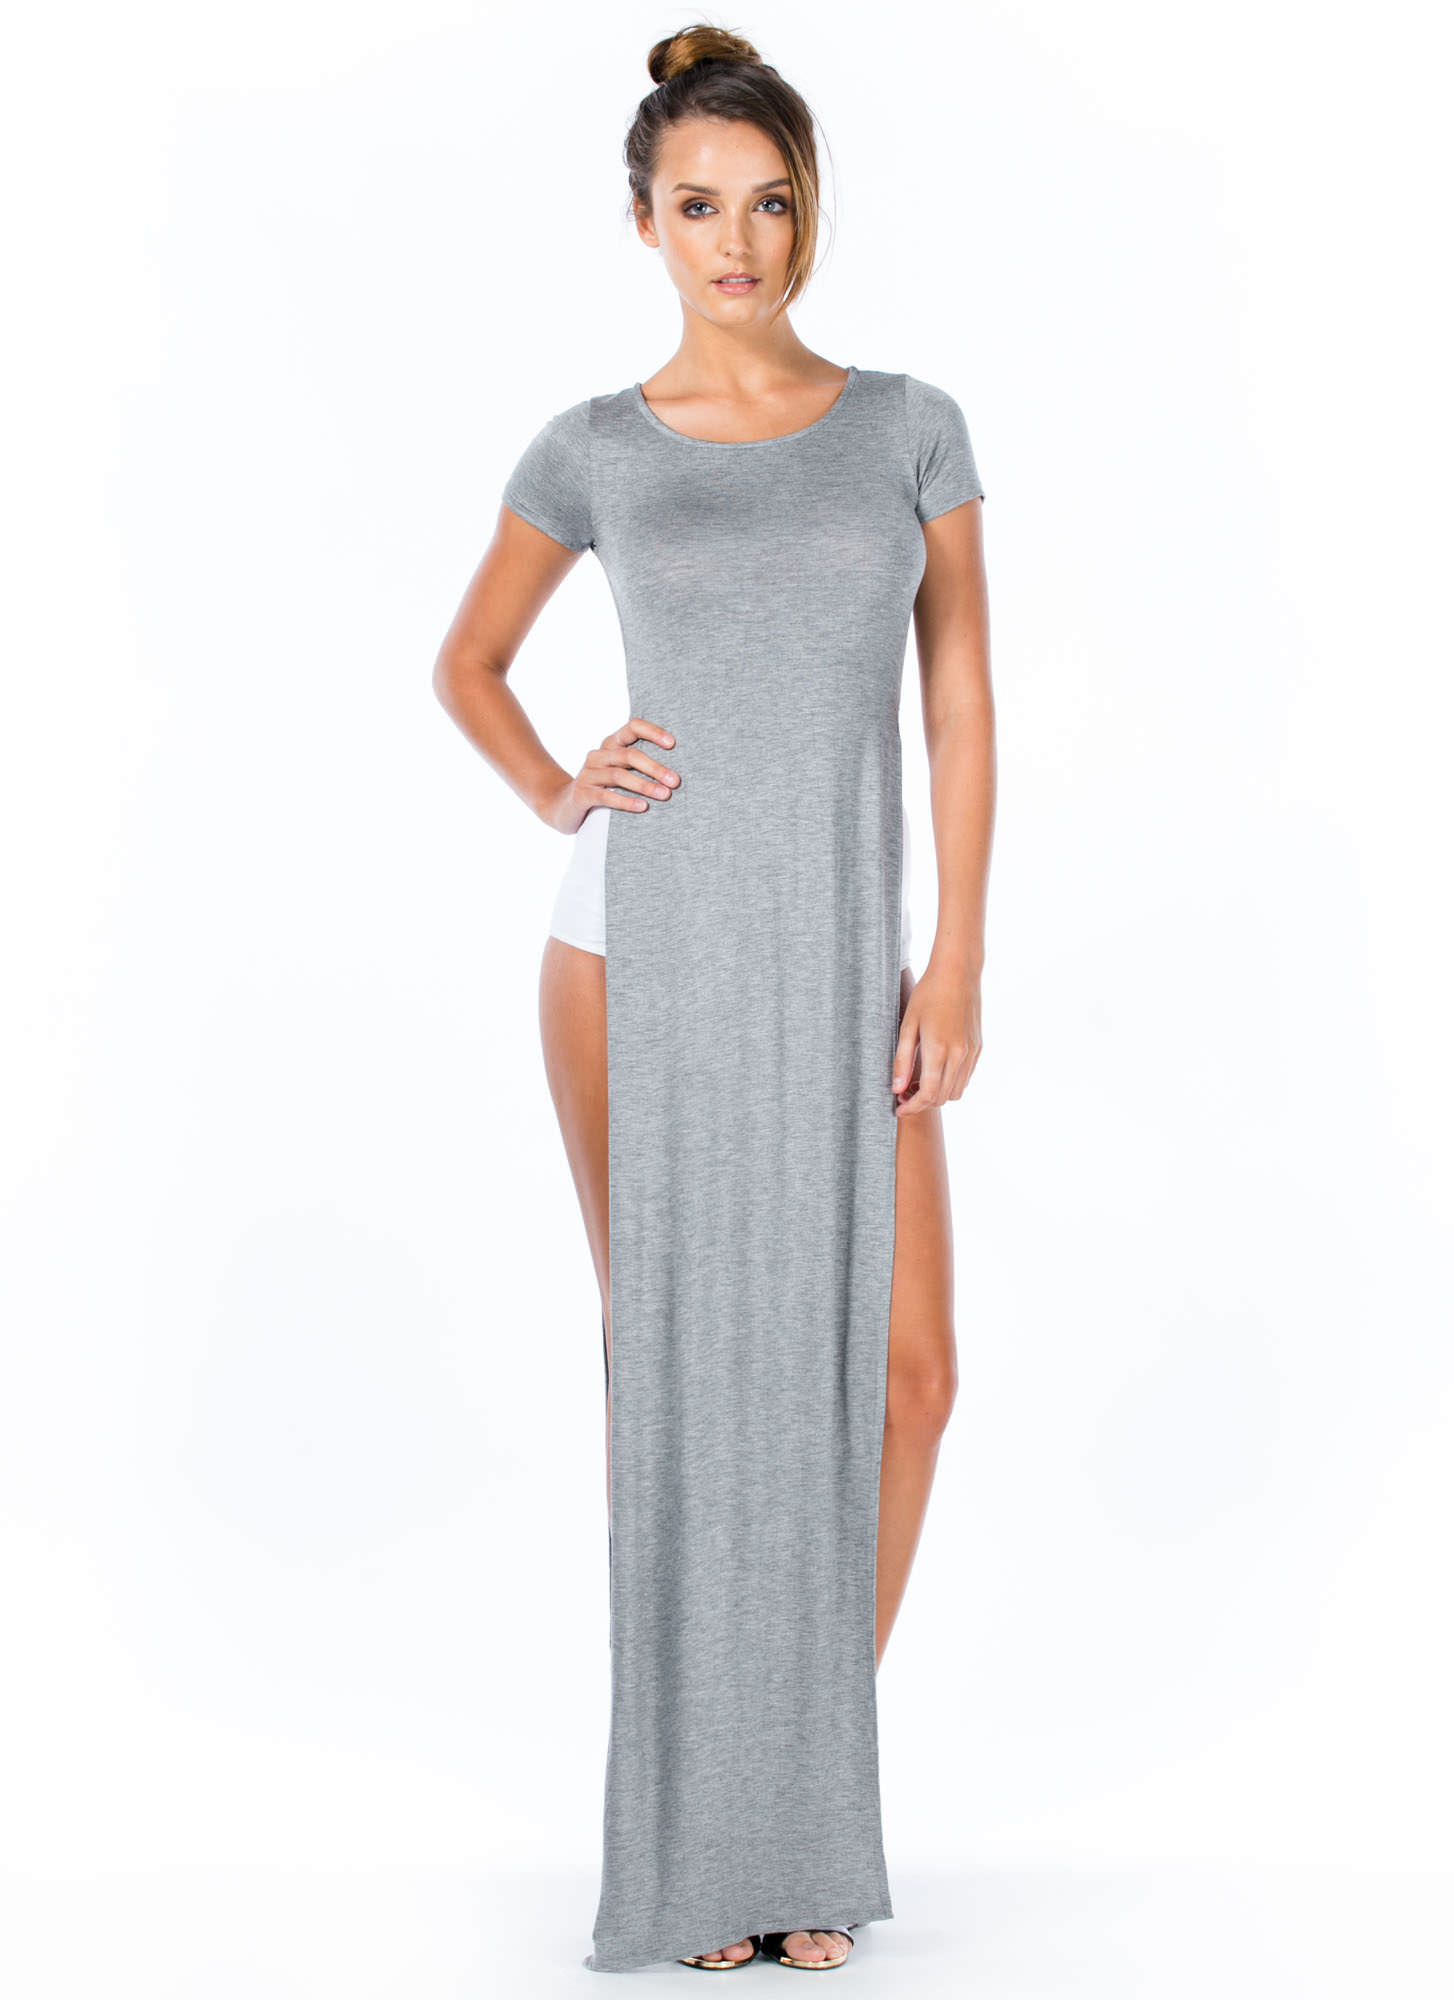 Trends In High Places Side Slit Maxi HGREY